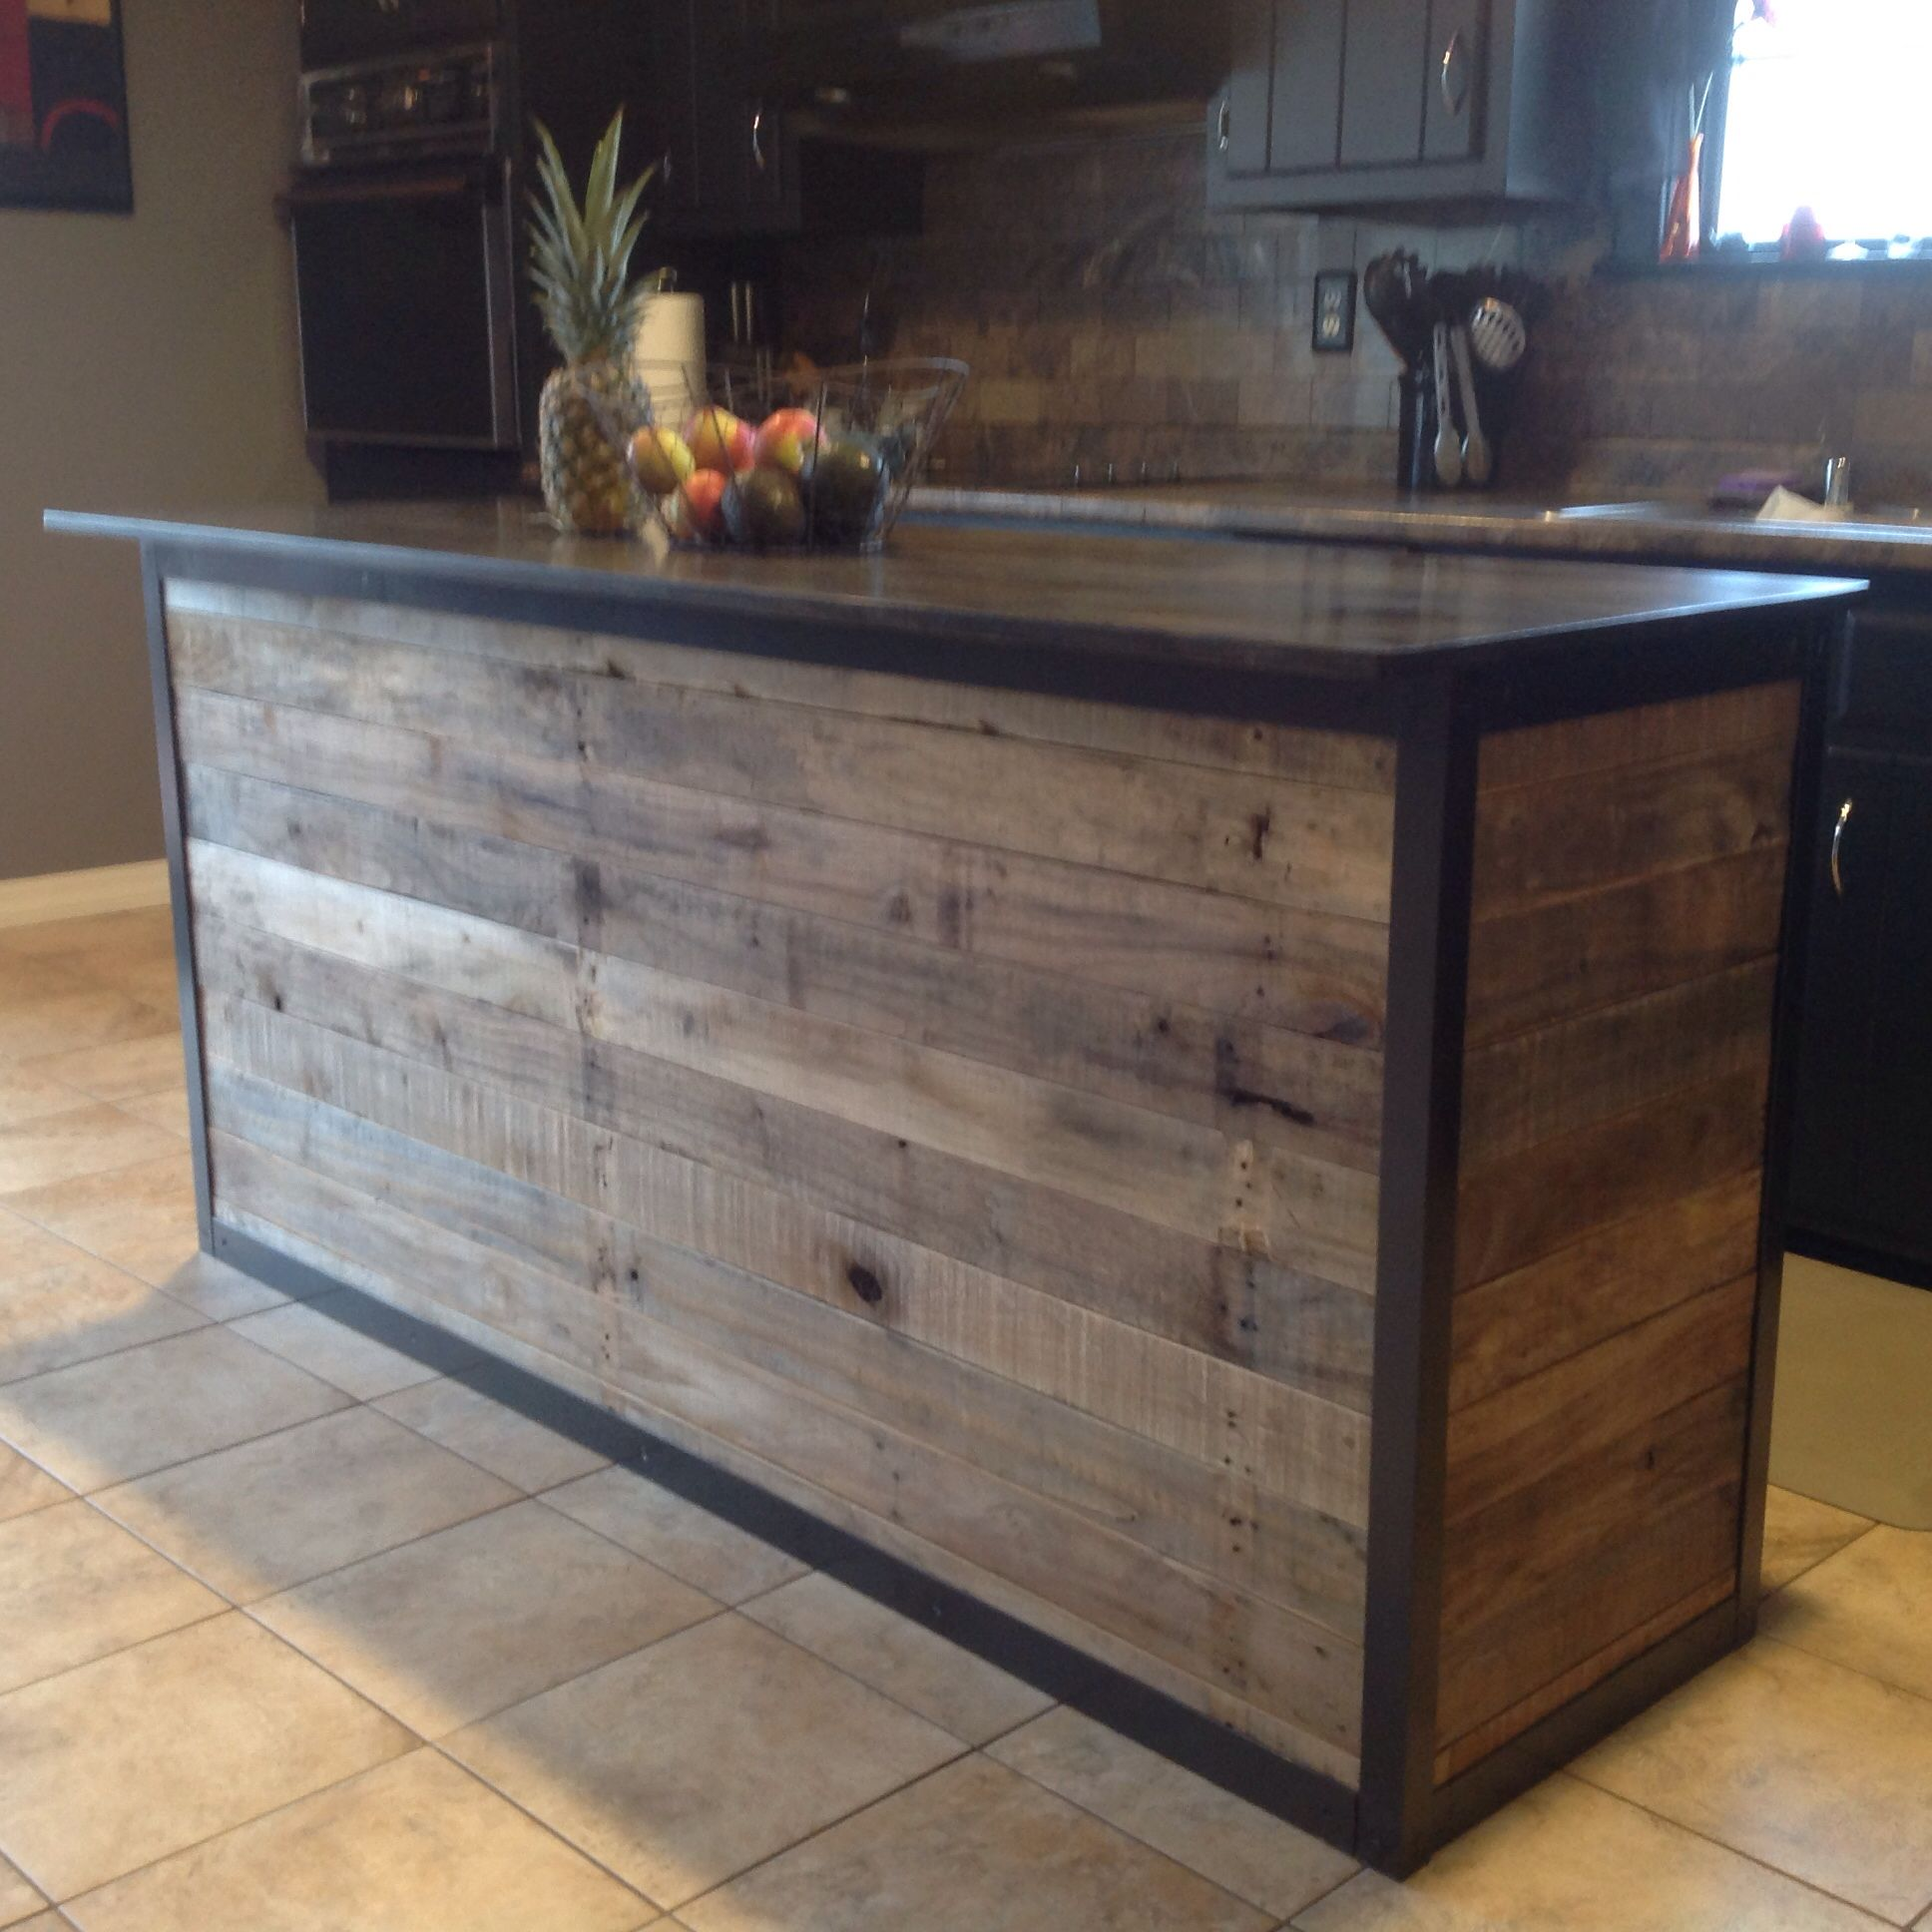 Diy kitchen island made from pallet wood house ideas